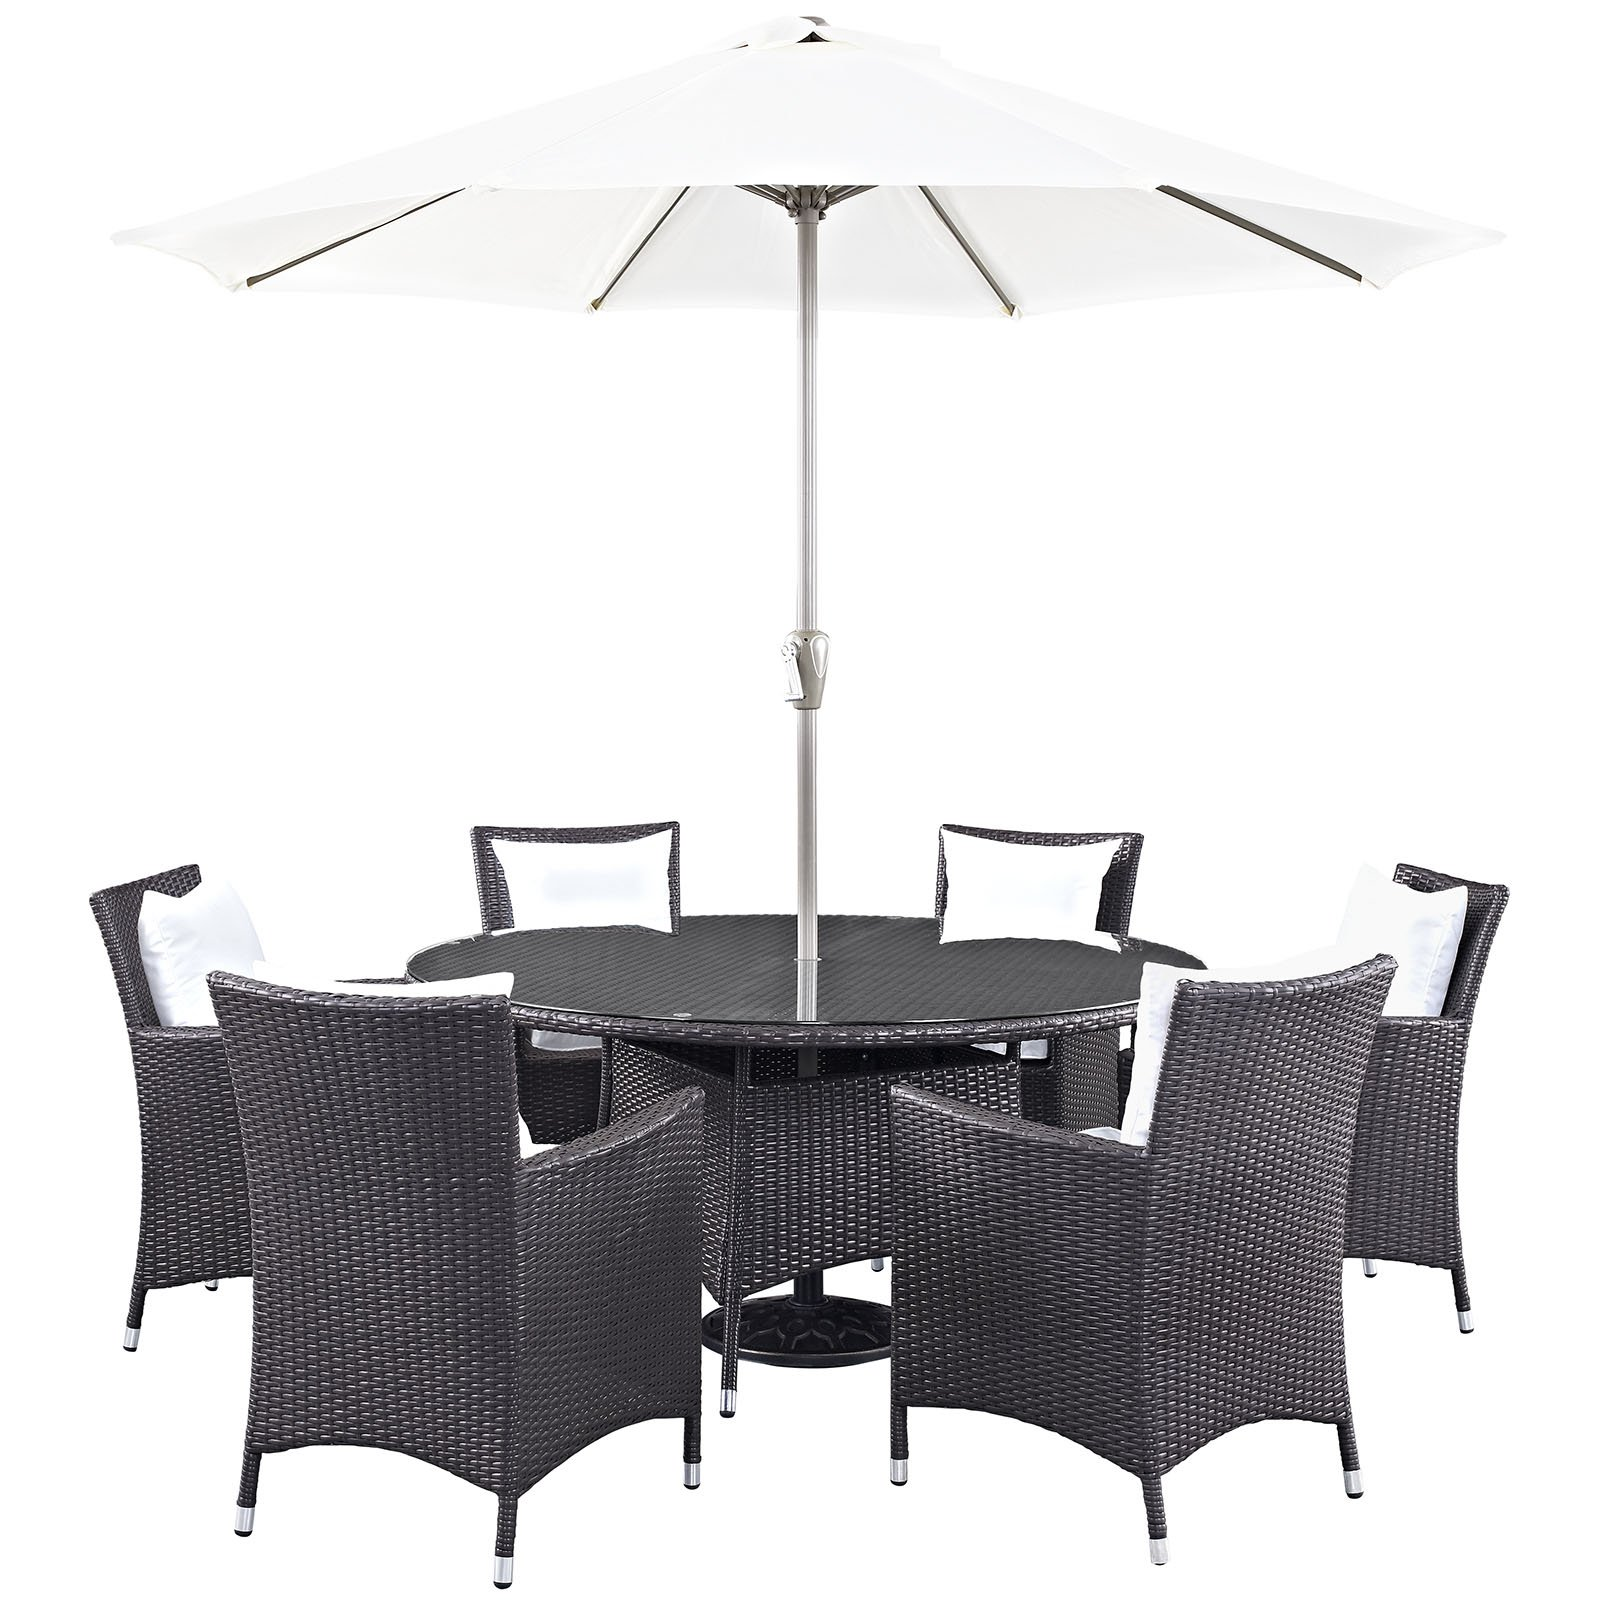 Modway Convene 8 Piece Outdoor Patio Dining Room Set, Multiple Colors by Lexmod